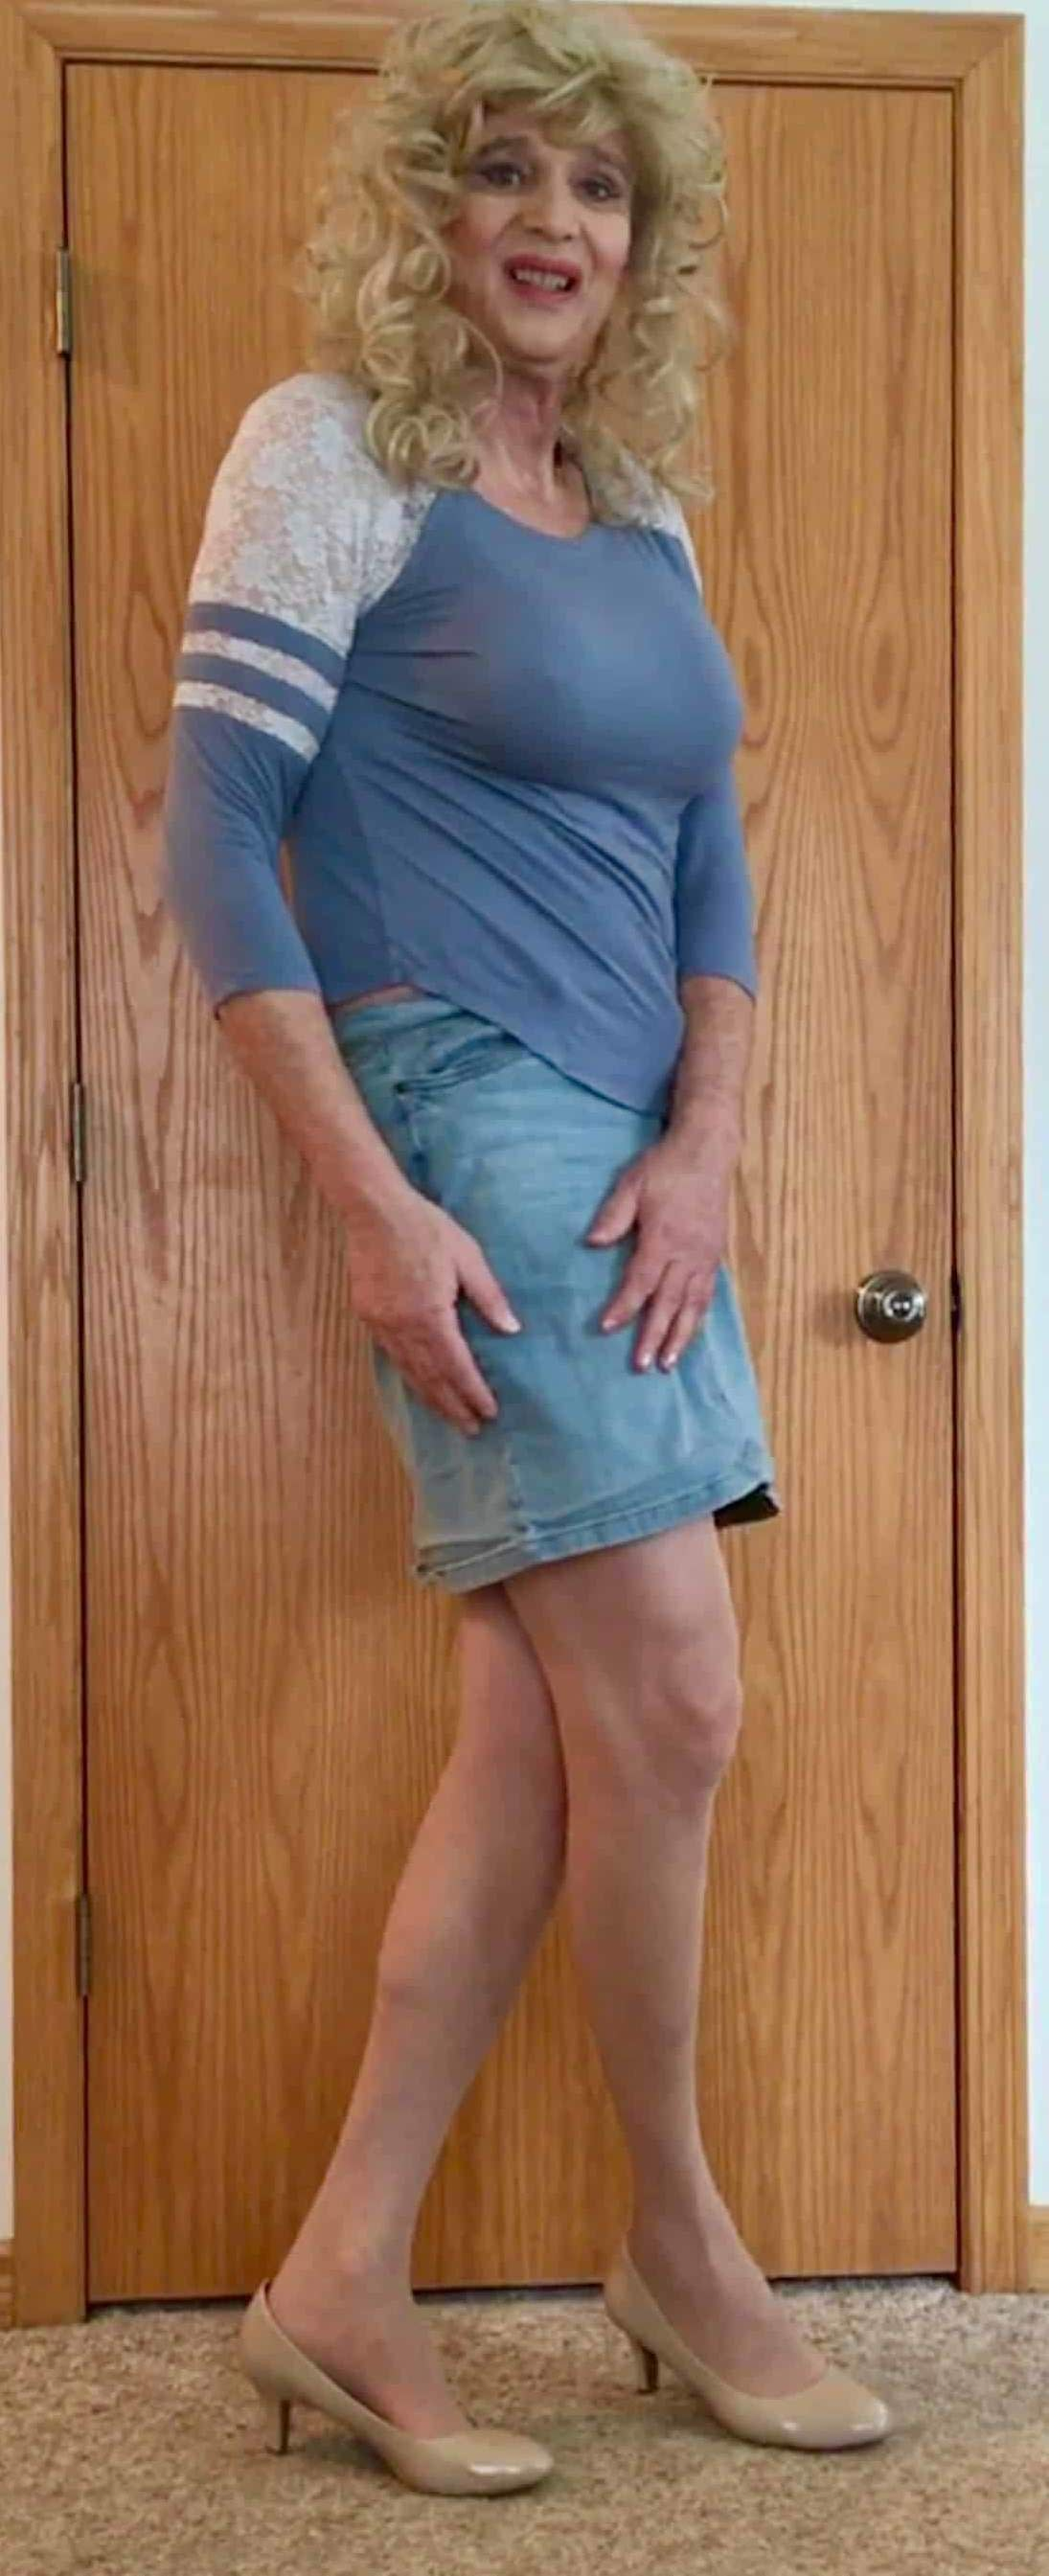 Blue jean skirt with pantyhose and heels